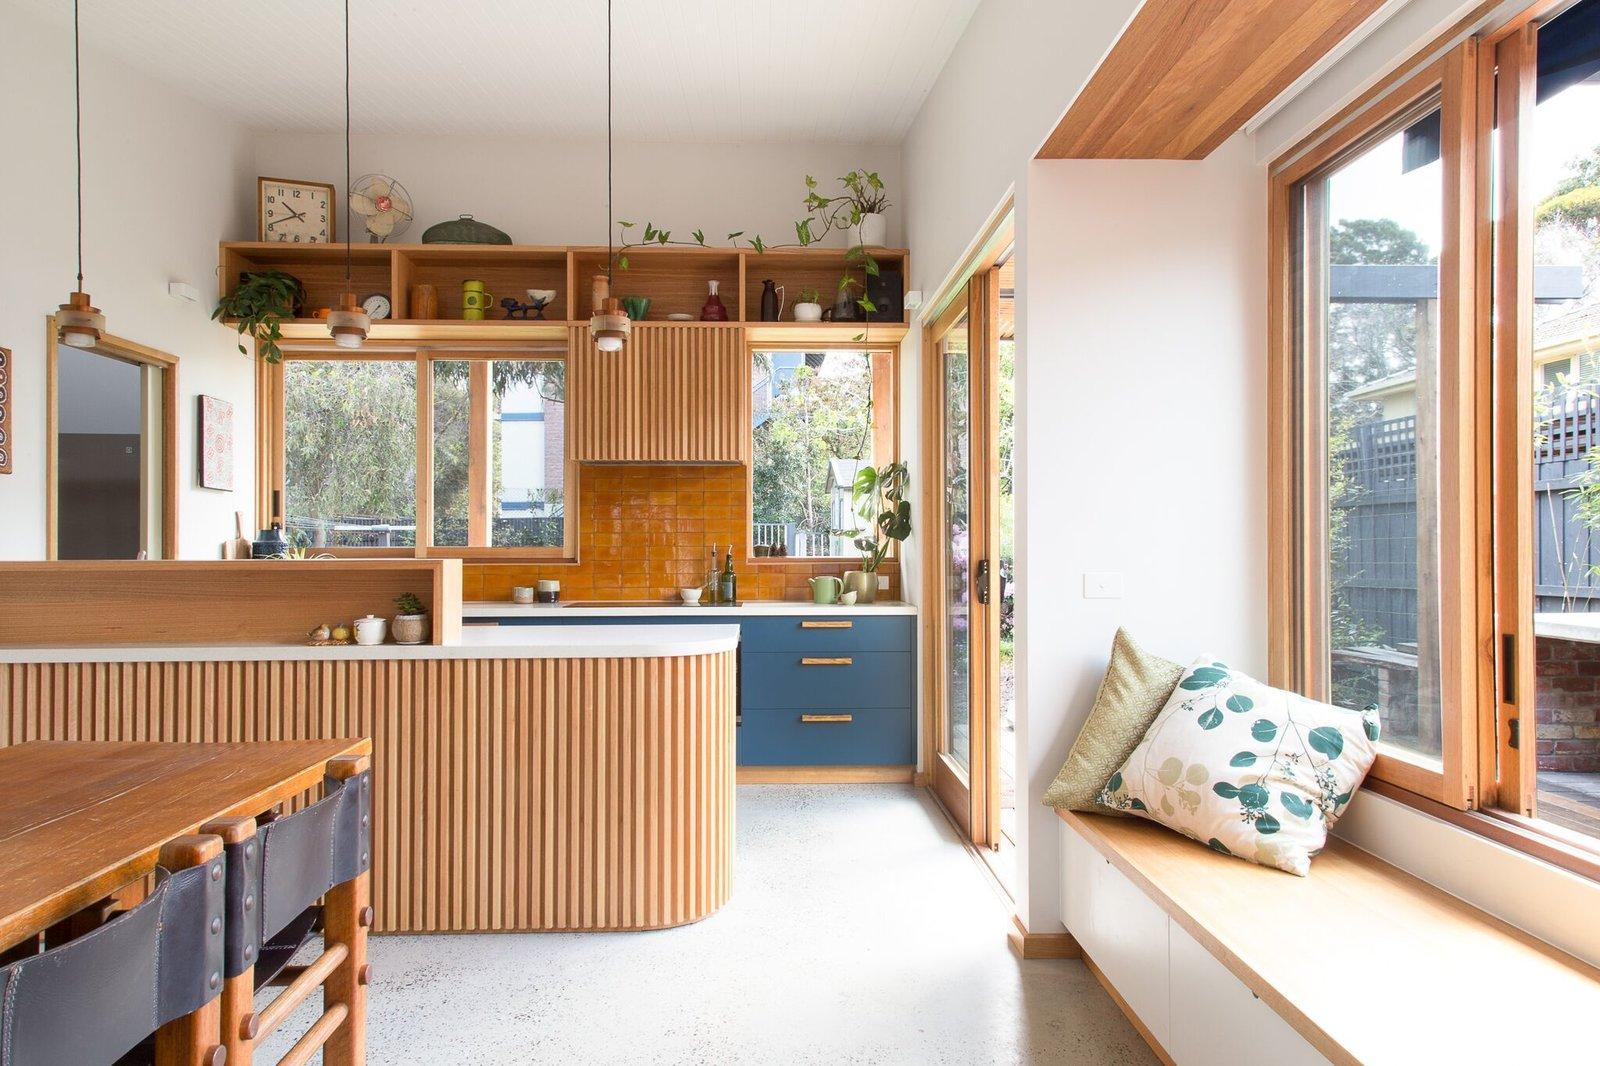 Dining Room, Chair, Table, Pendant Lighting, Concrete Floor, and Storage A connected dining area and kitchen allows for an open, airy feeling.  Photo 7 of 15 in A Cramped Bungalow Is Reborn as an Eco-Minded Abode For Two Gardeners